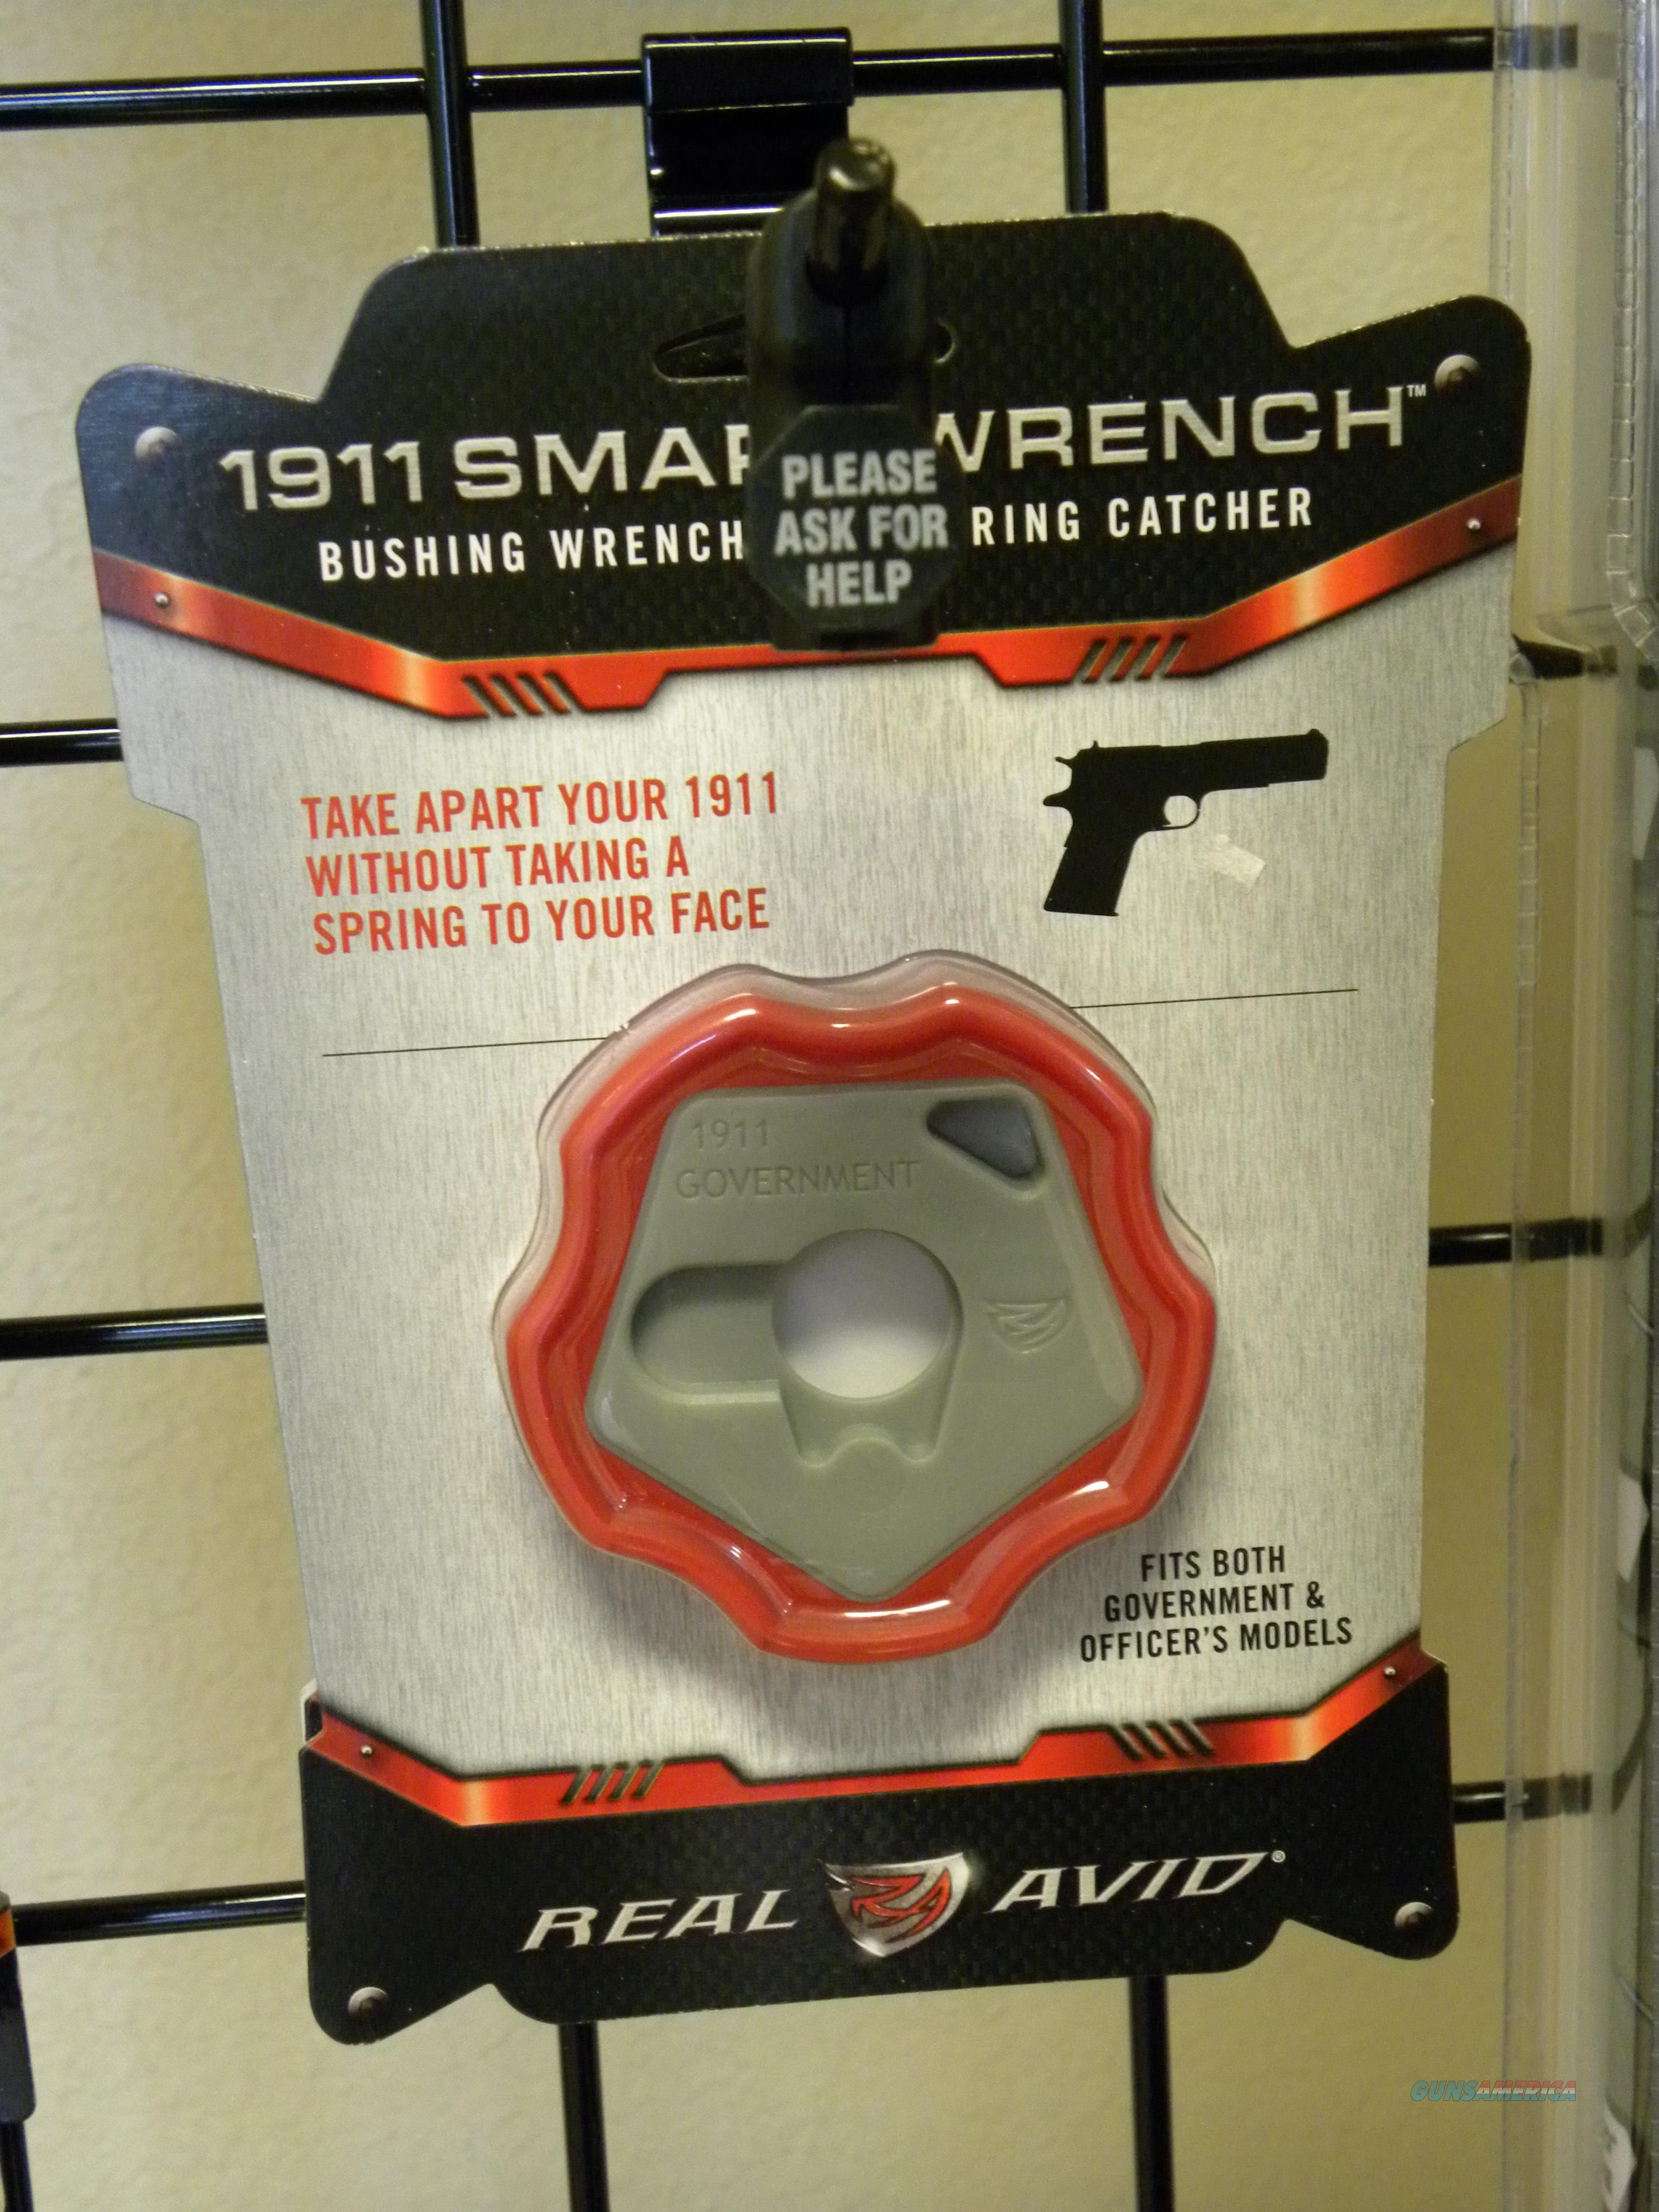 Real Avid 1911 Smart Wrench For Sale